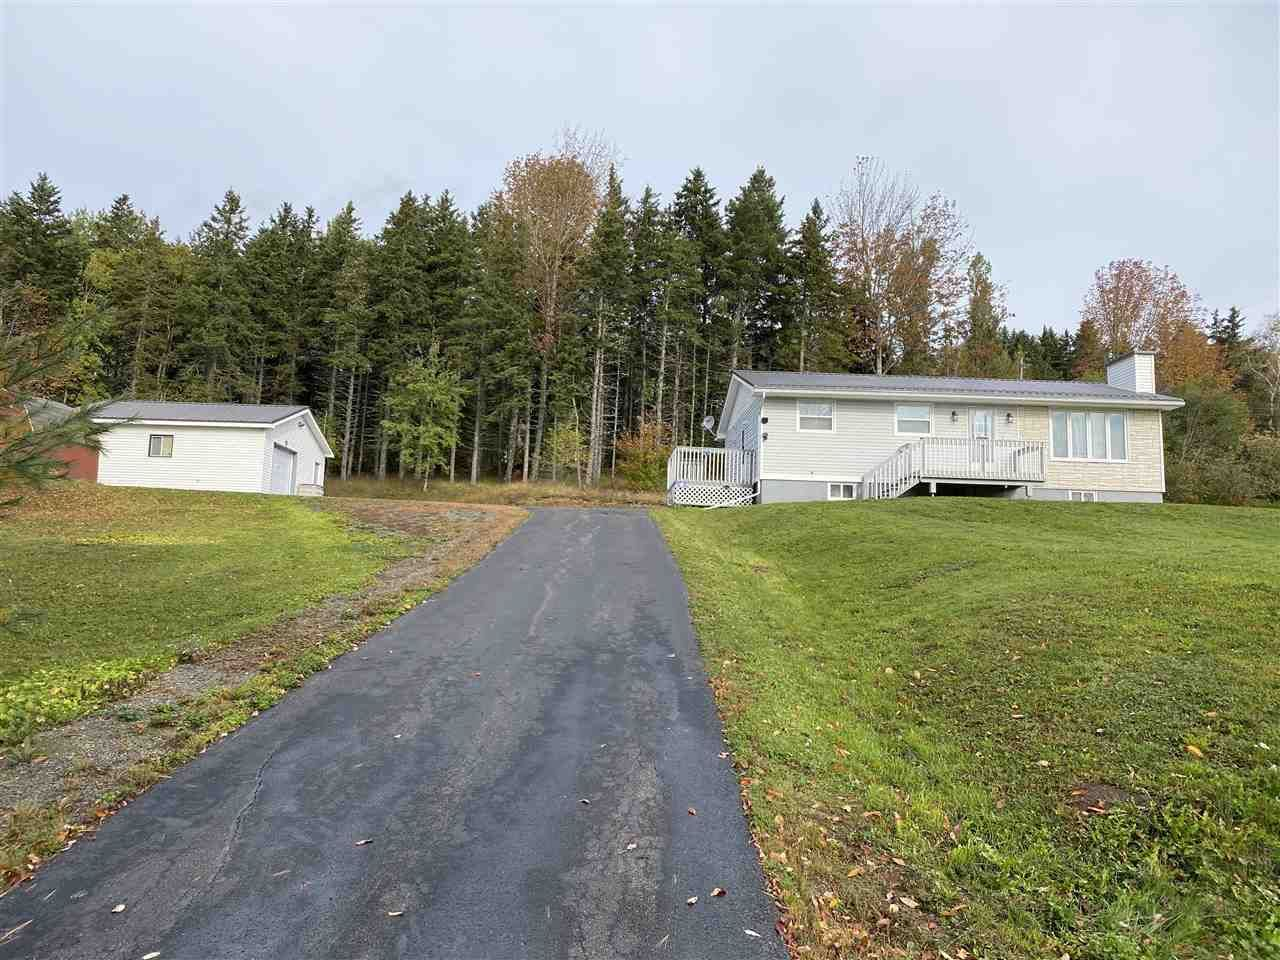 Main Photo: 21 Caravan Drive in Green Hill: 108-Rural Pictou County Residential for sale (Northern Region)  : MLS®# 202021275